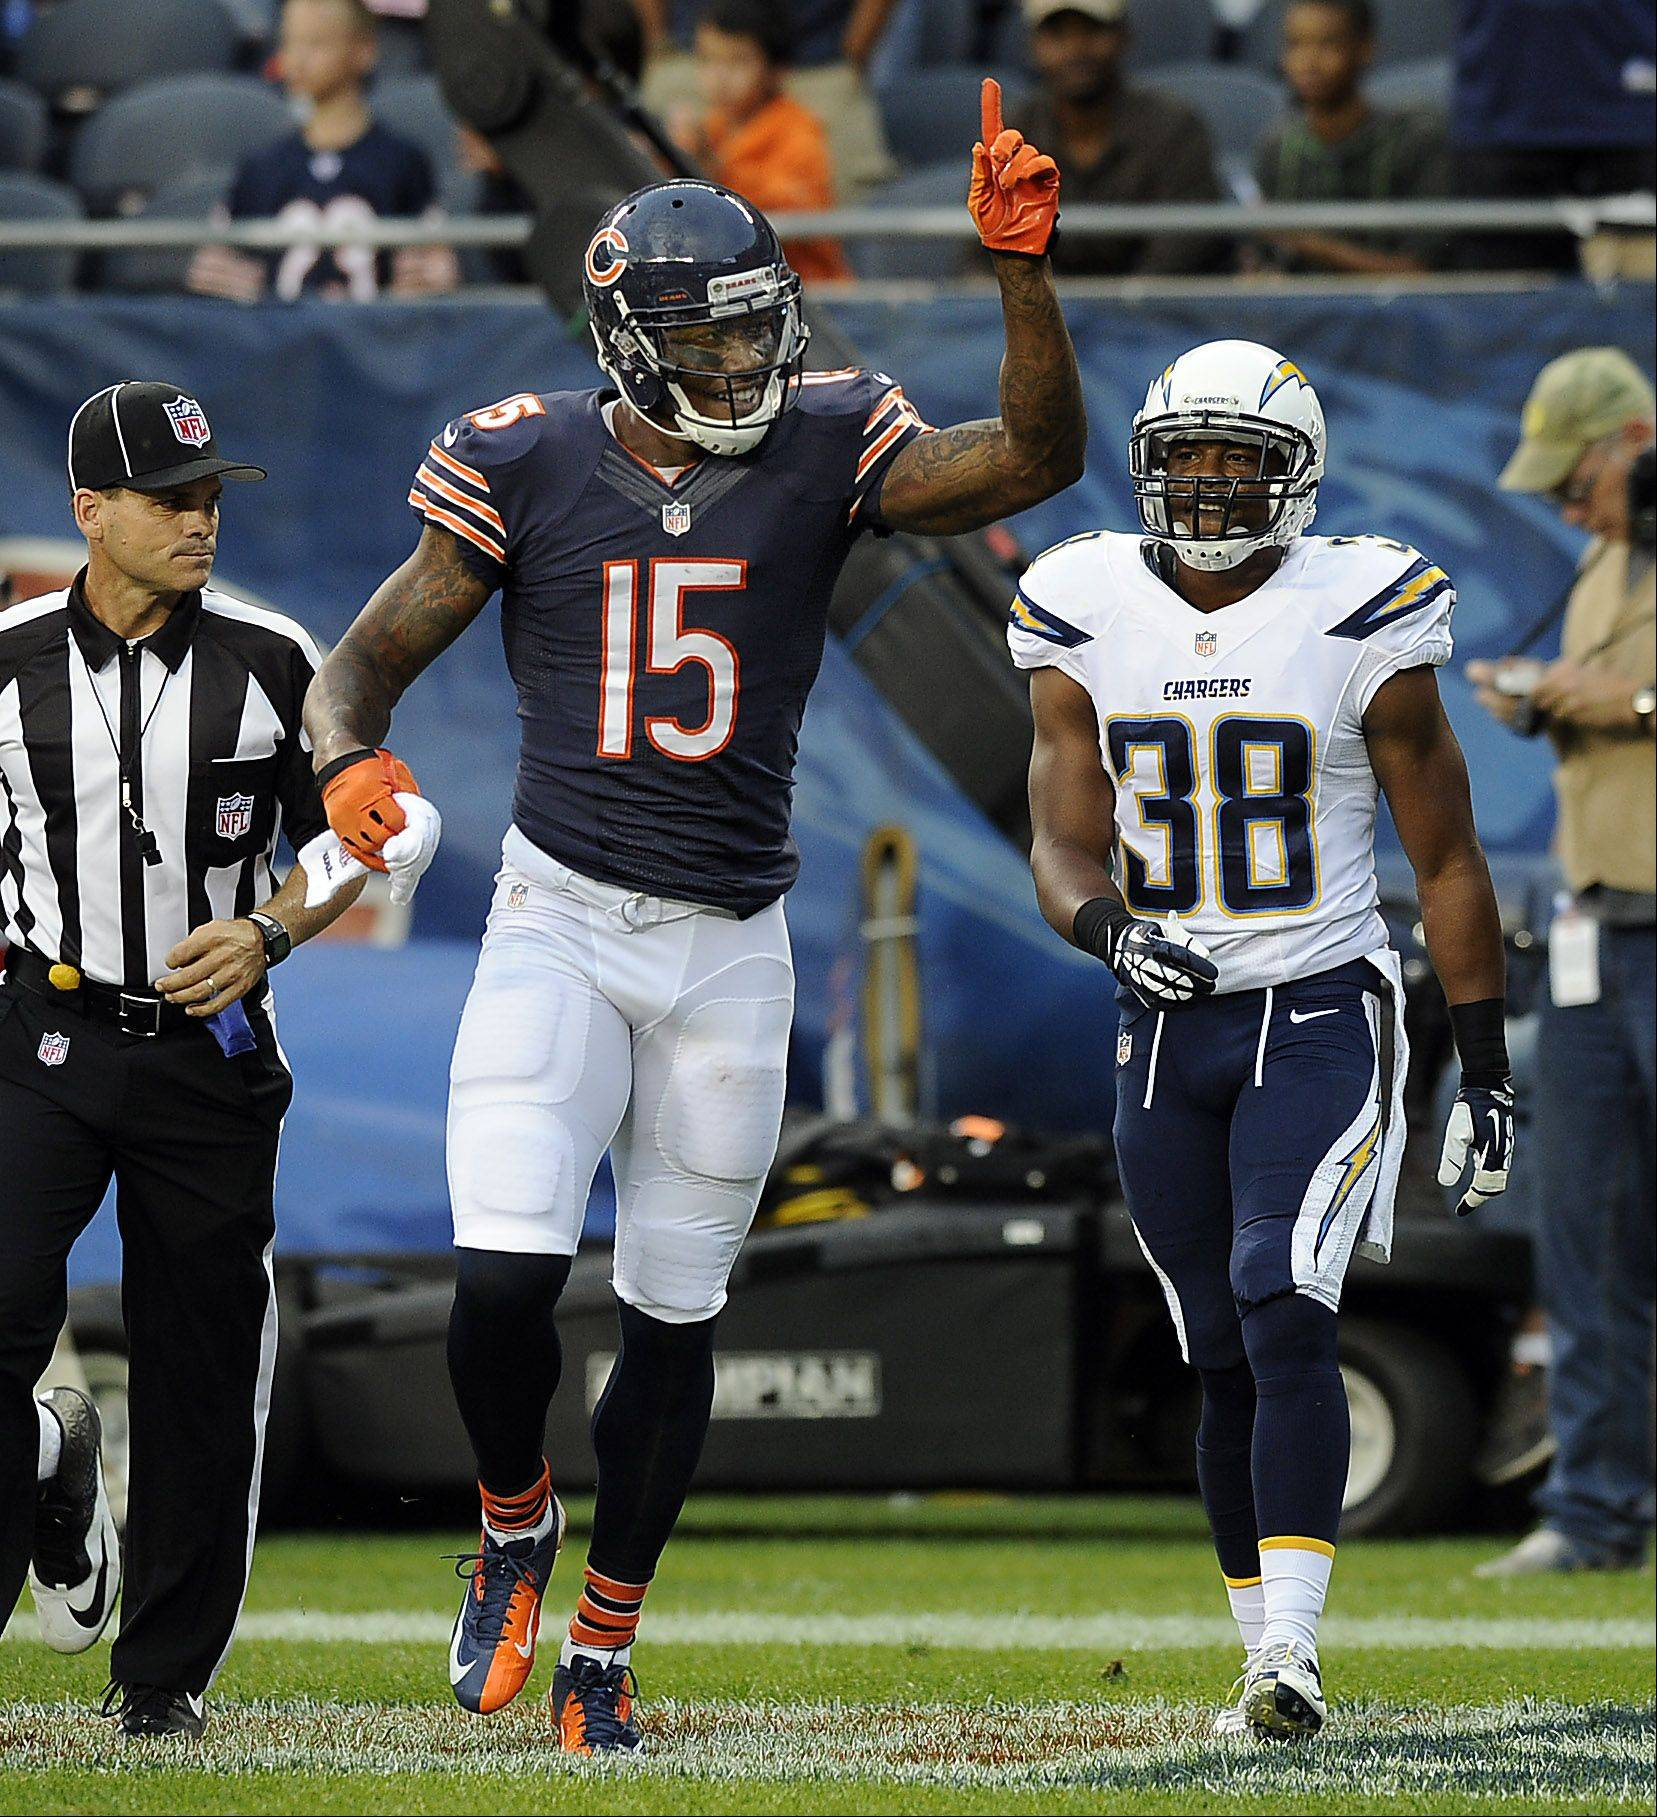 Mike Spellman, as well as most Bears fans, would like to know what's up with Bears wide receiver Brandon Marshall.